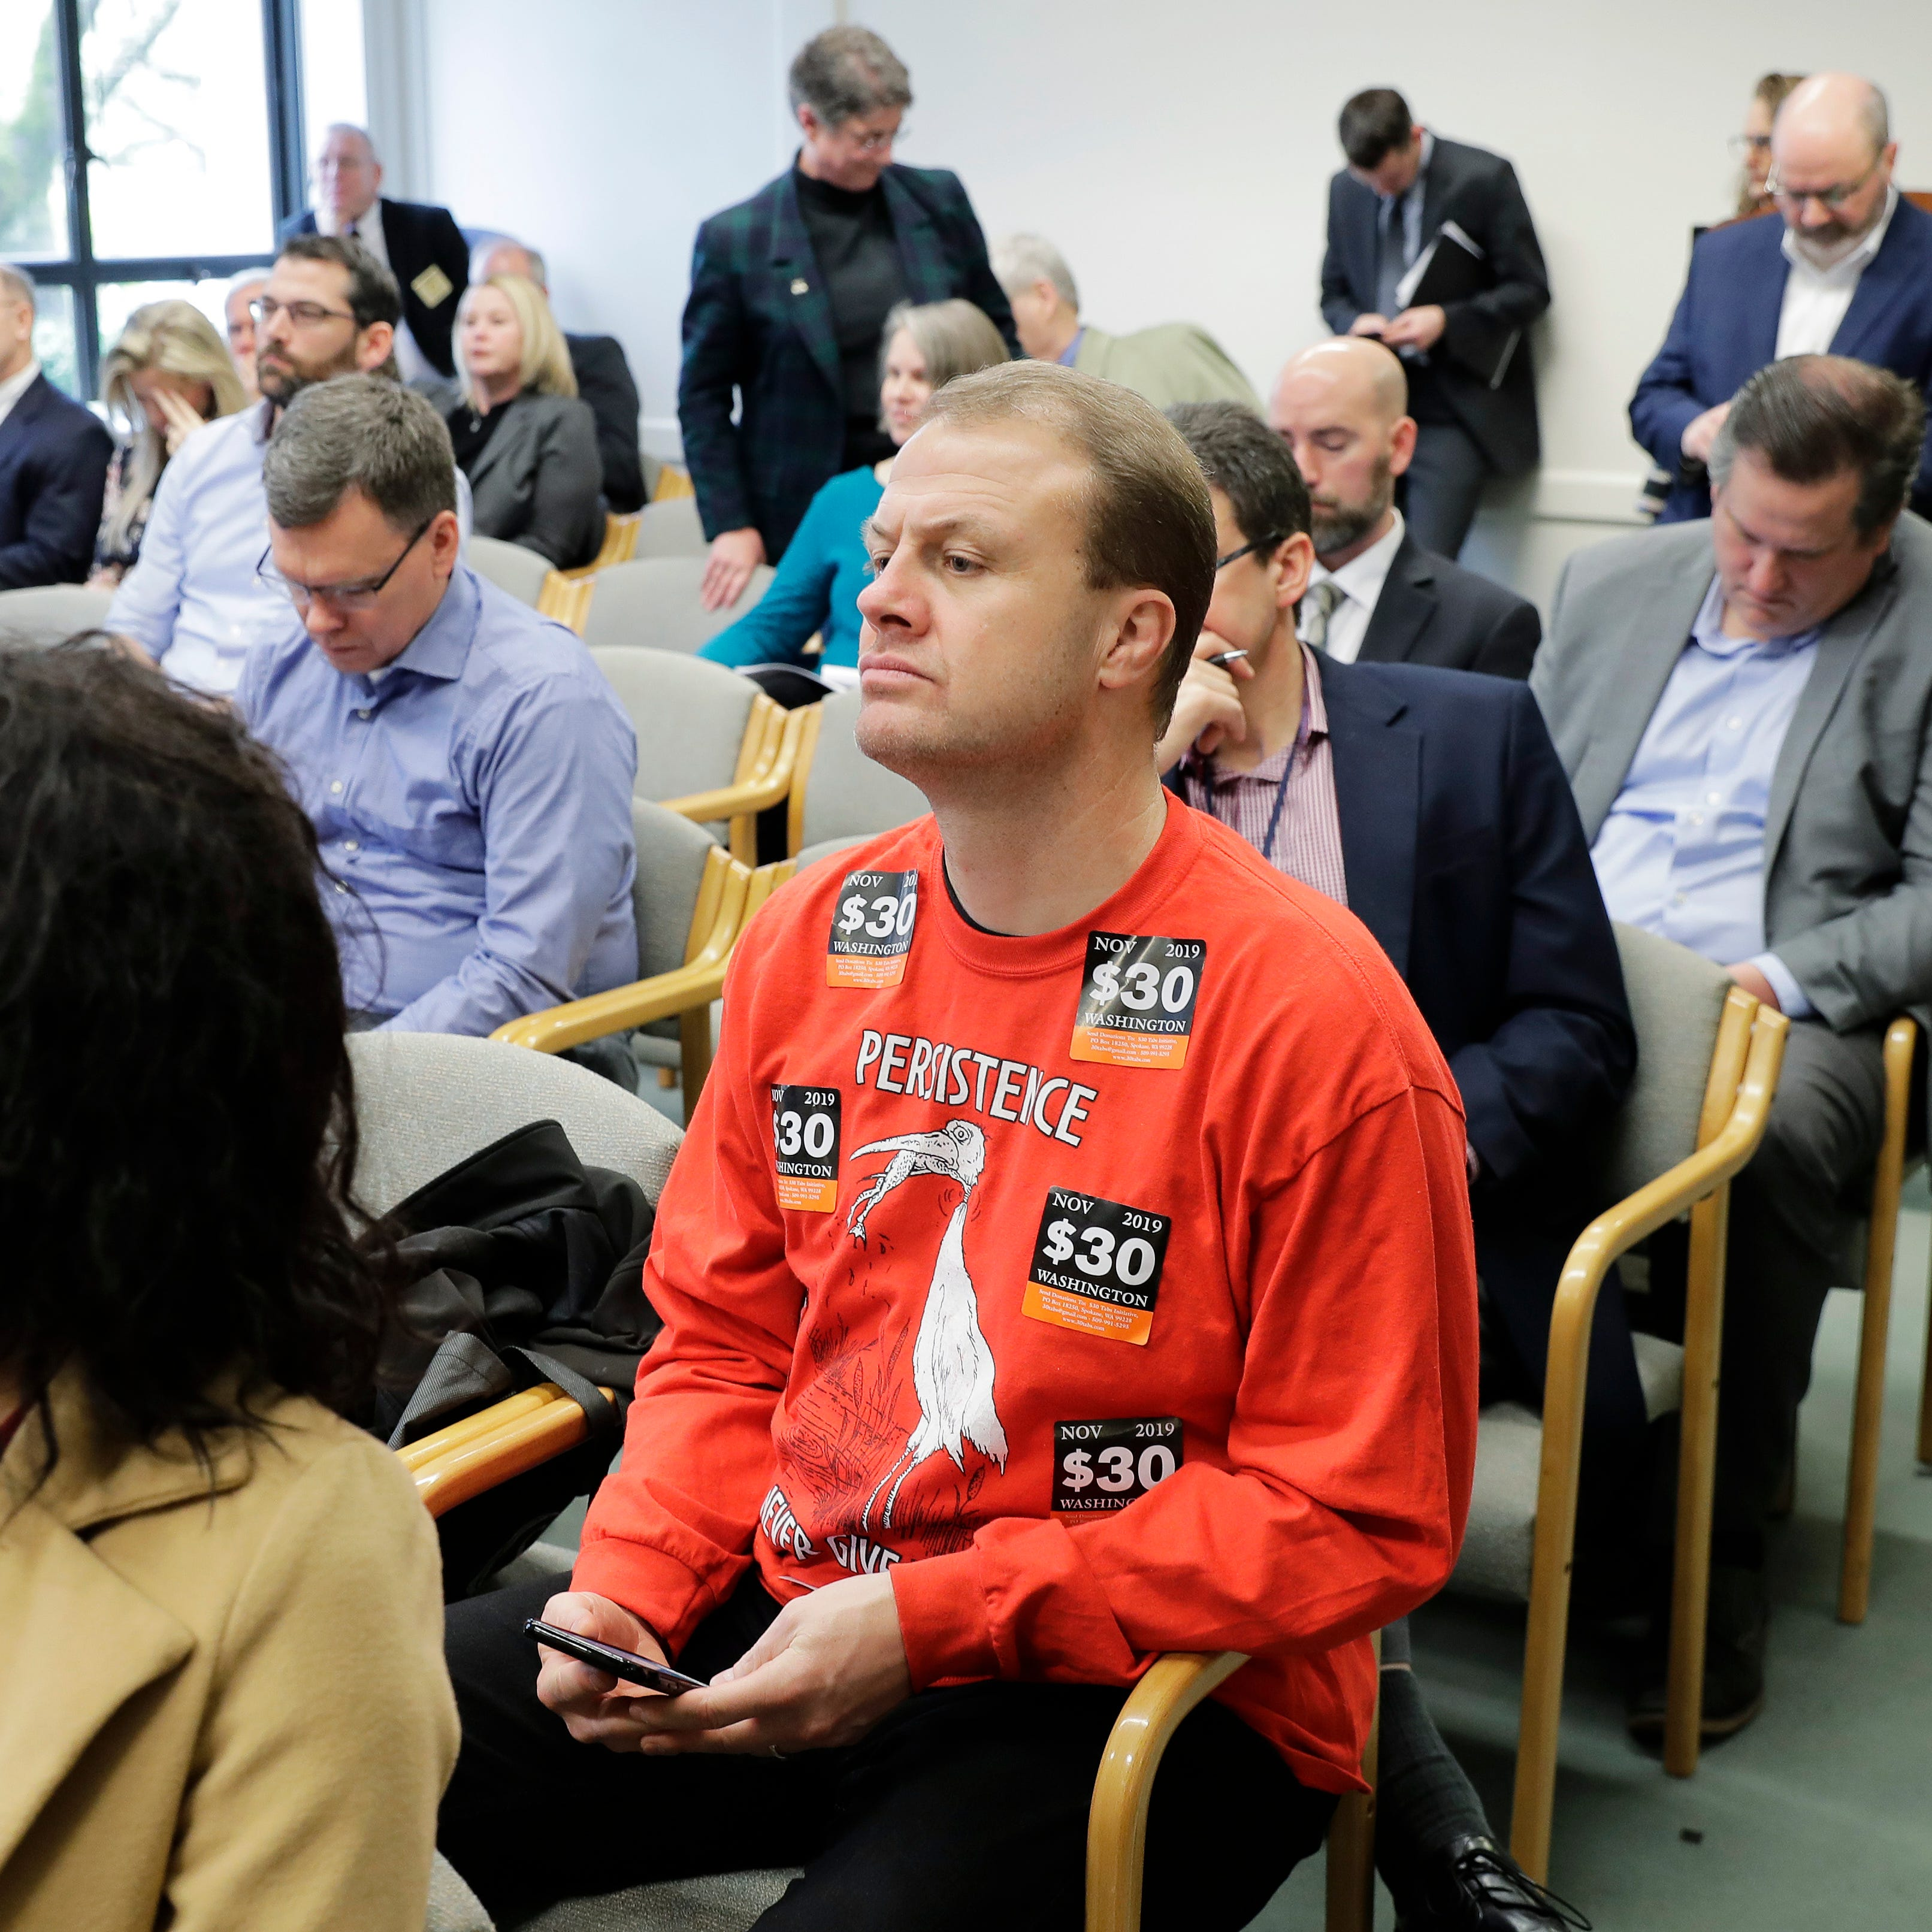 Tim Eyman charged with stealing chair, says it was a mistake